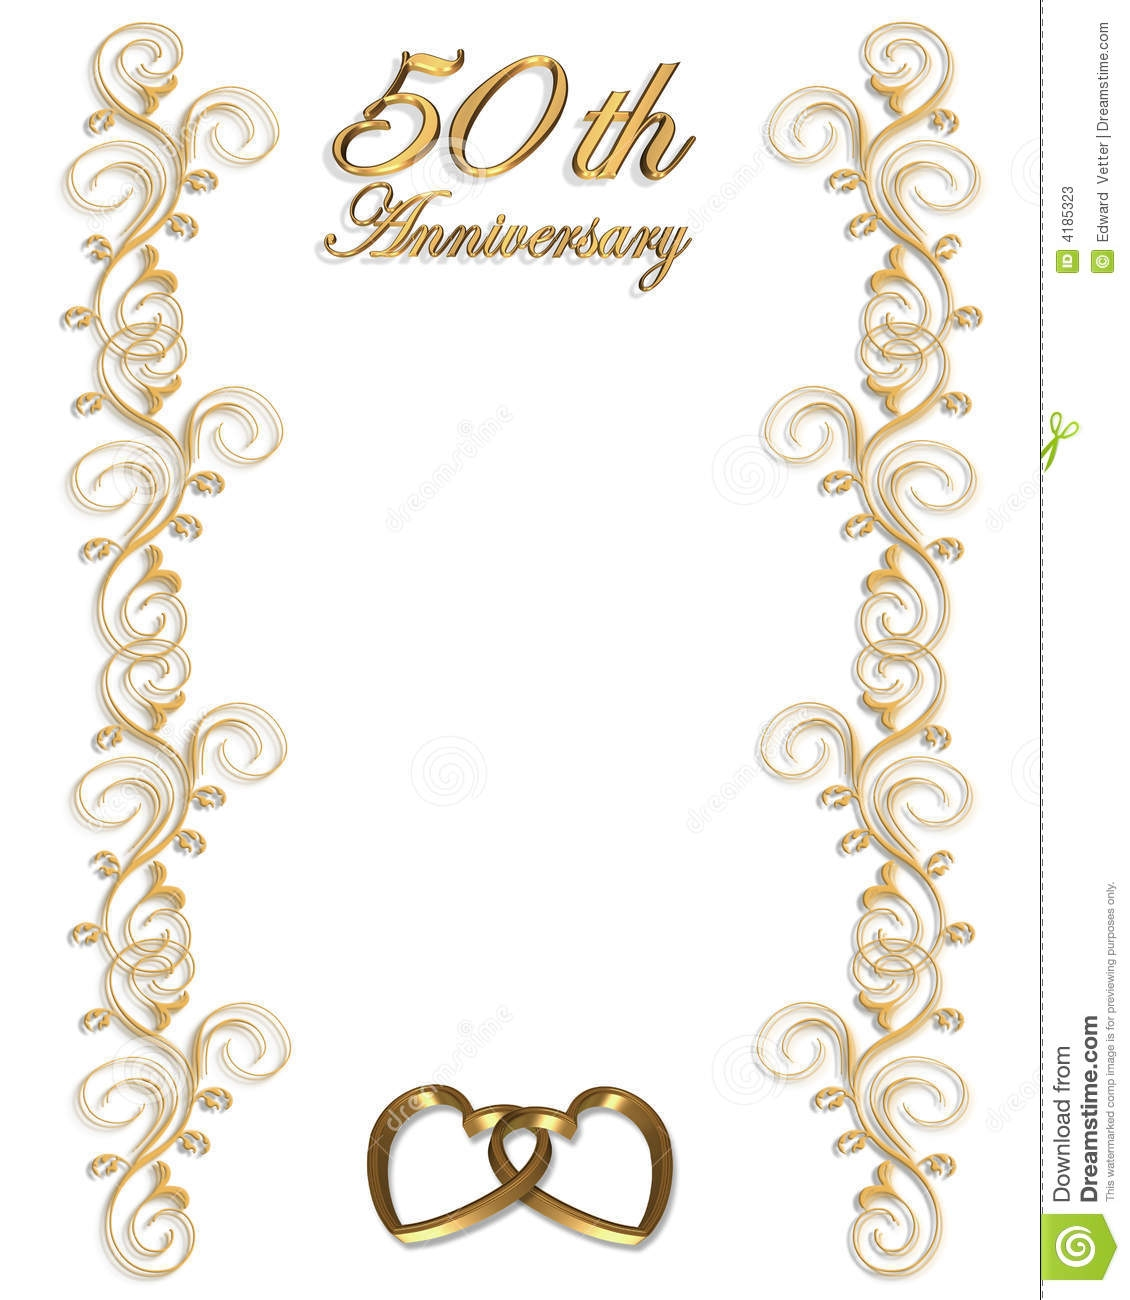 50th birthday border ; 50th-anniversary-border-clipart-1